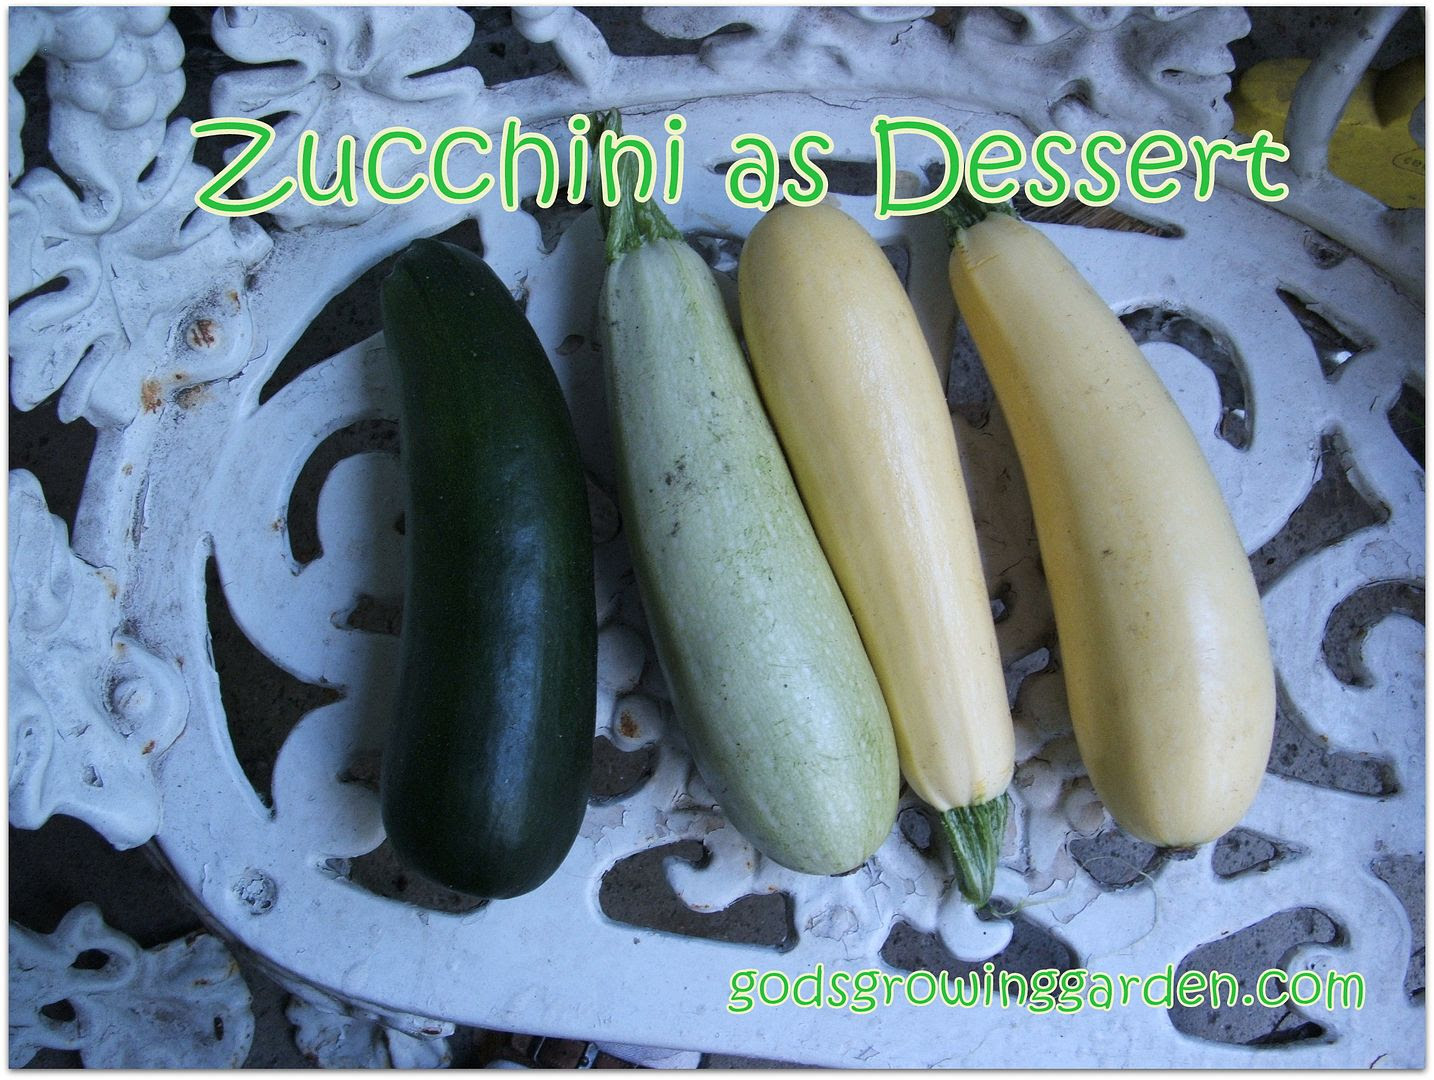 Zucchini by Angie Ouellette-Tower for godsgrowinggarden.com photo 001_zps90e32ca0.jpg